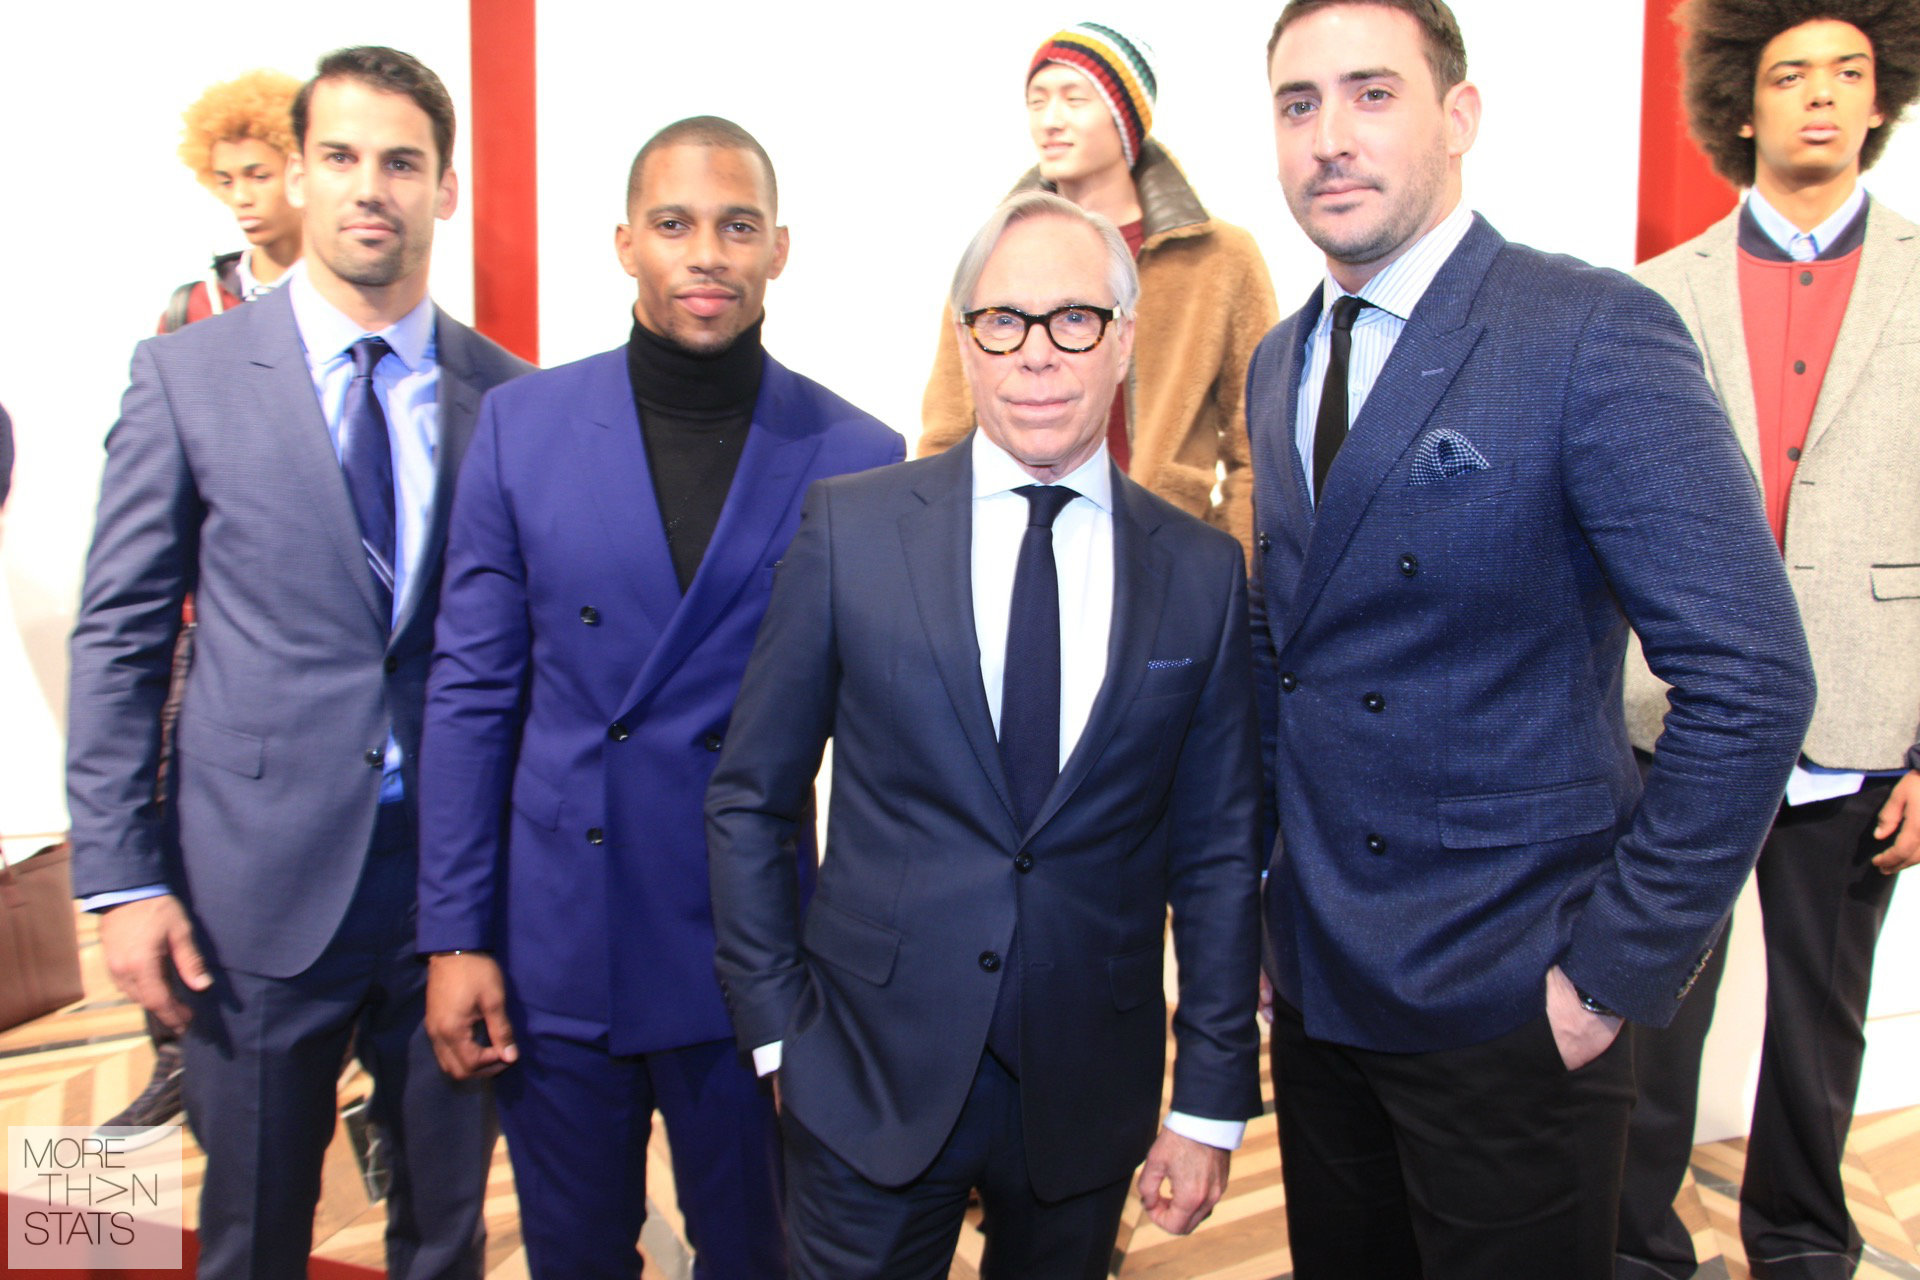 Tommy-Hilfiger-NYFWM-FW-16-Victor-Cruz-Eric-Decker-Matt-Harvey